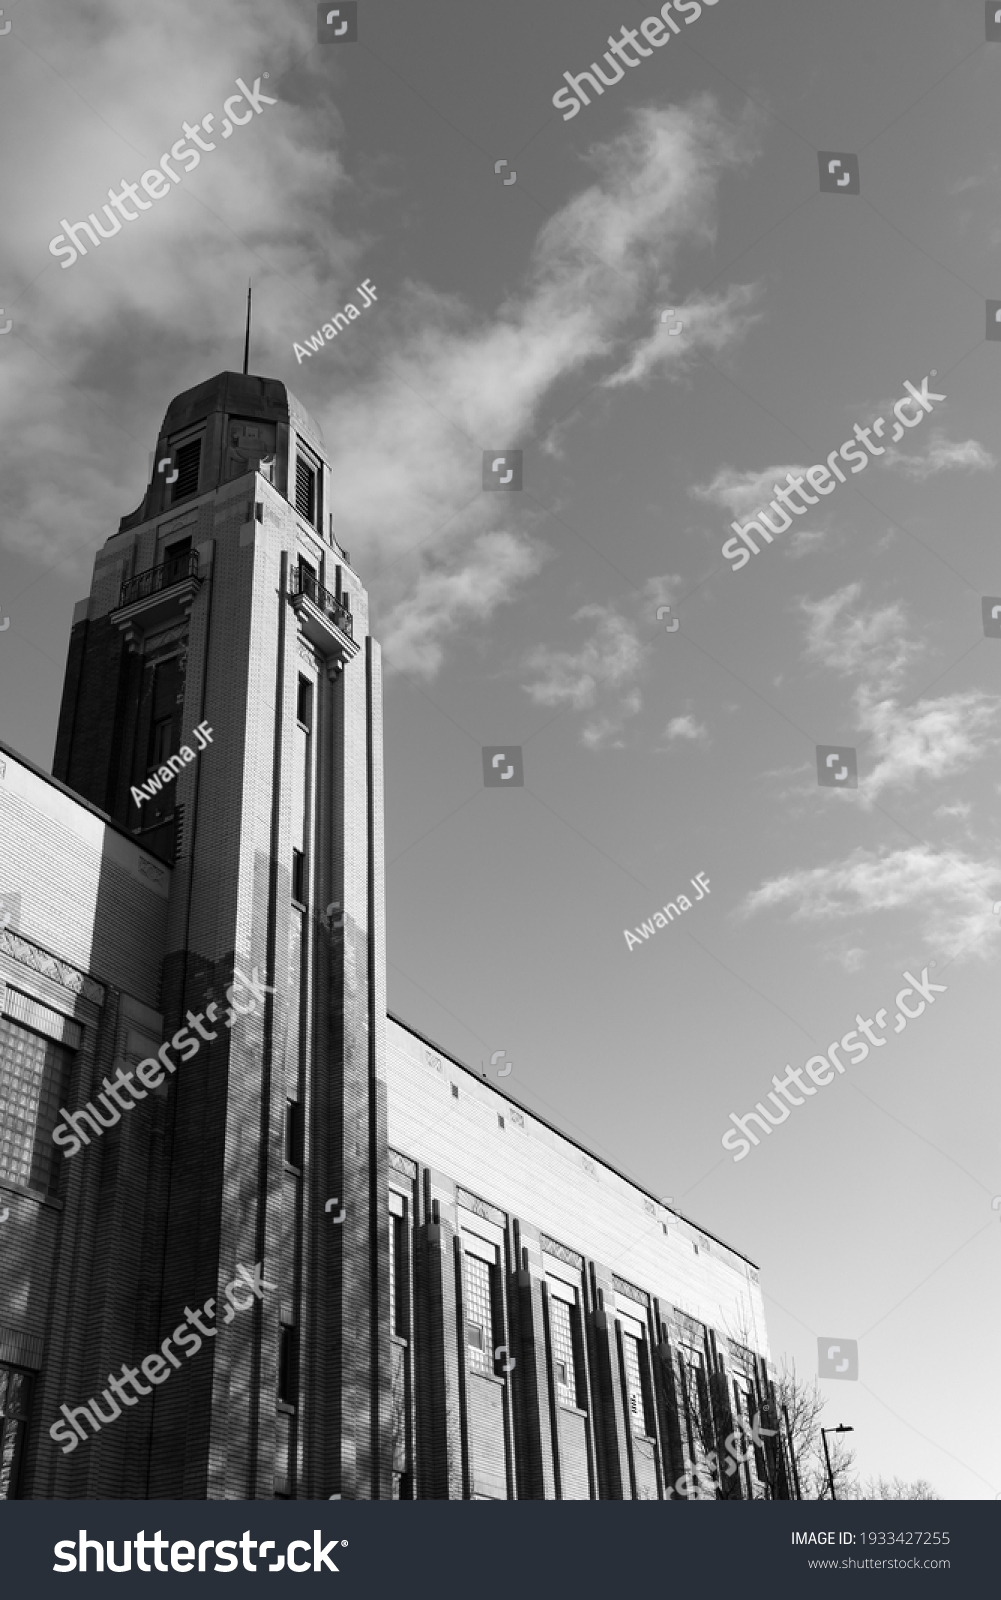 stock-photo-montreal-canada-march-black-